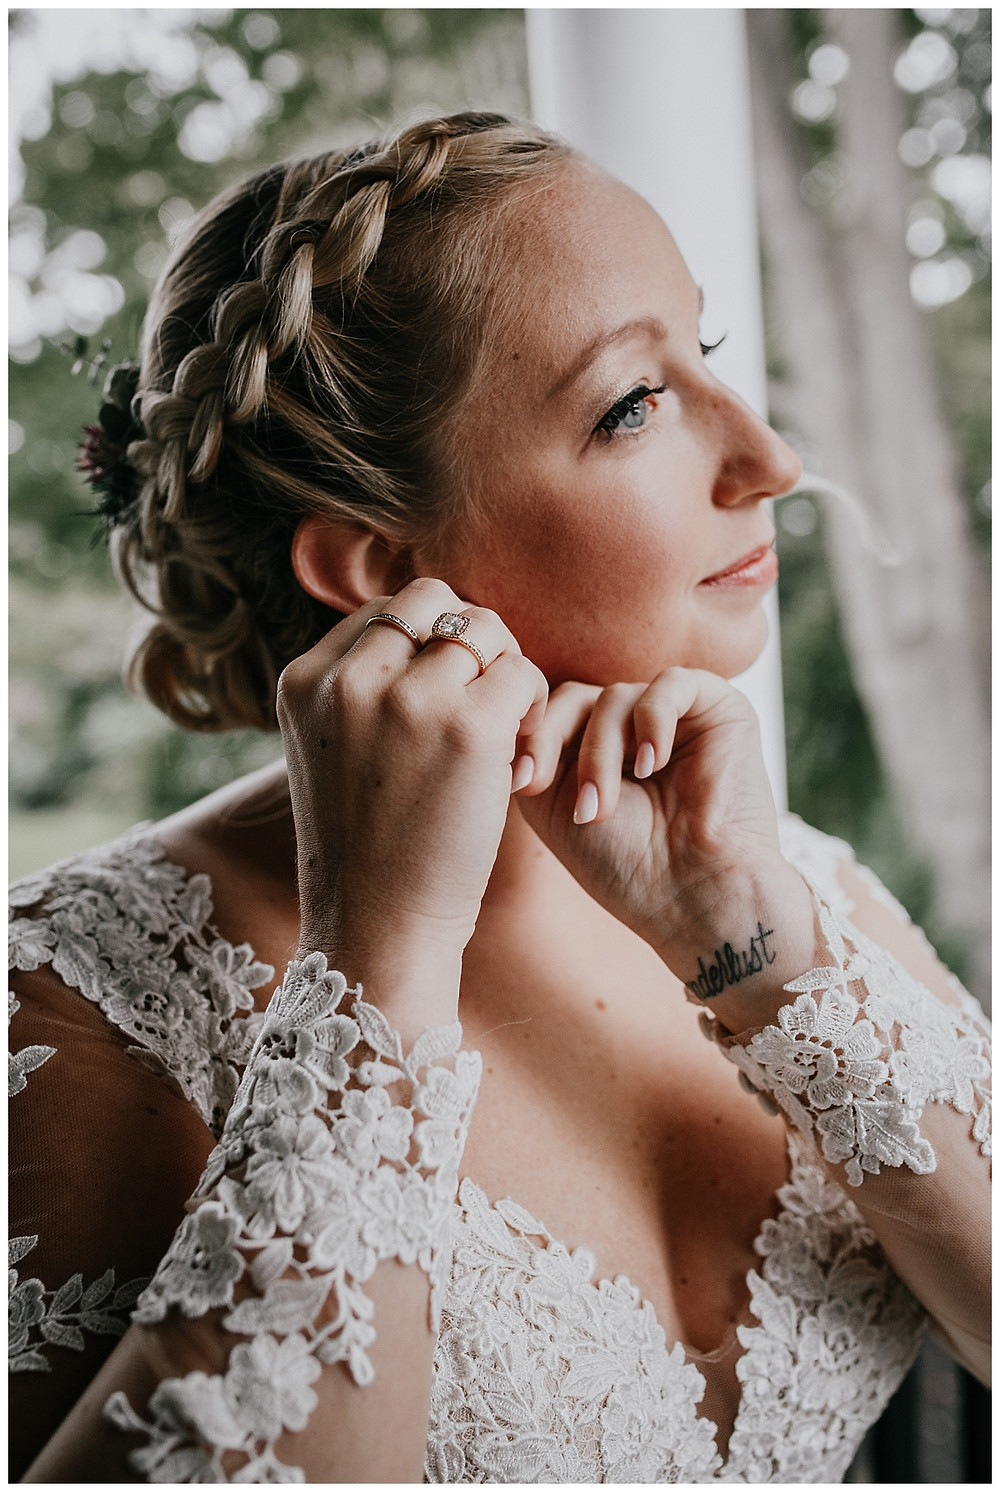 Whimsical Bridal Getting Ready Photos